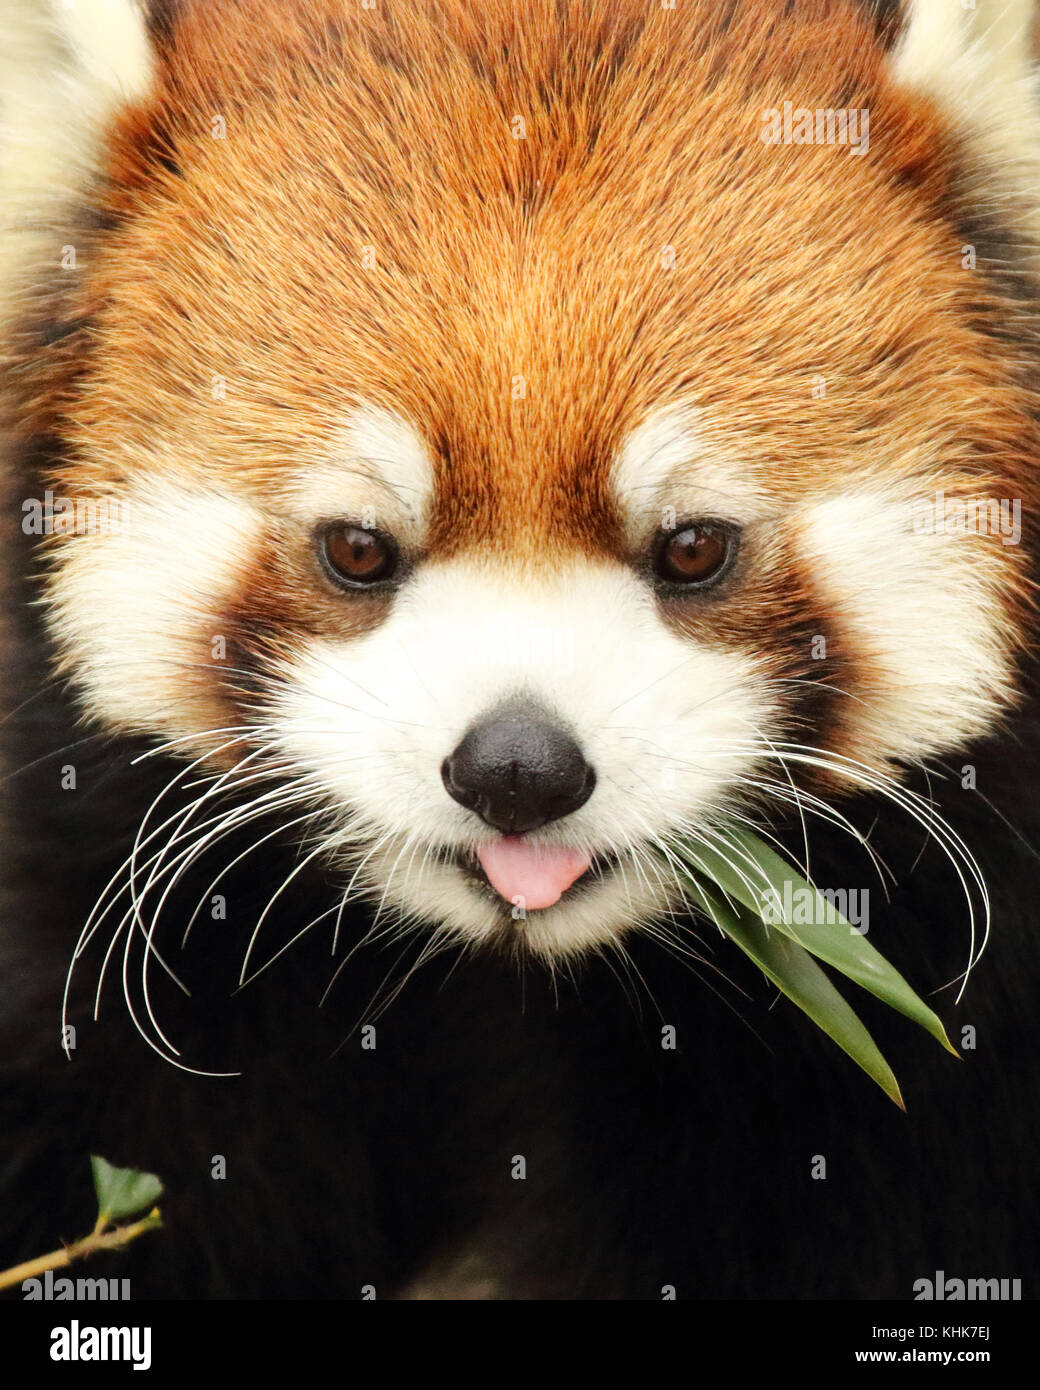 A Red panda giving a funny look while feeding. - Stock Image